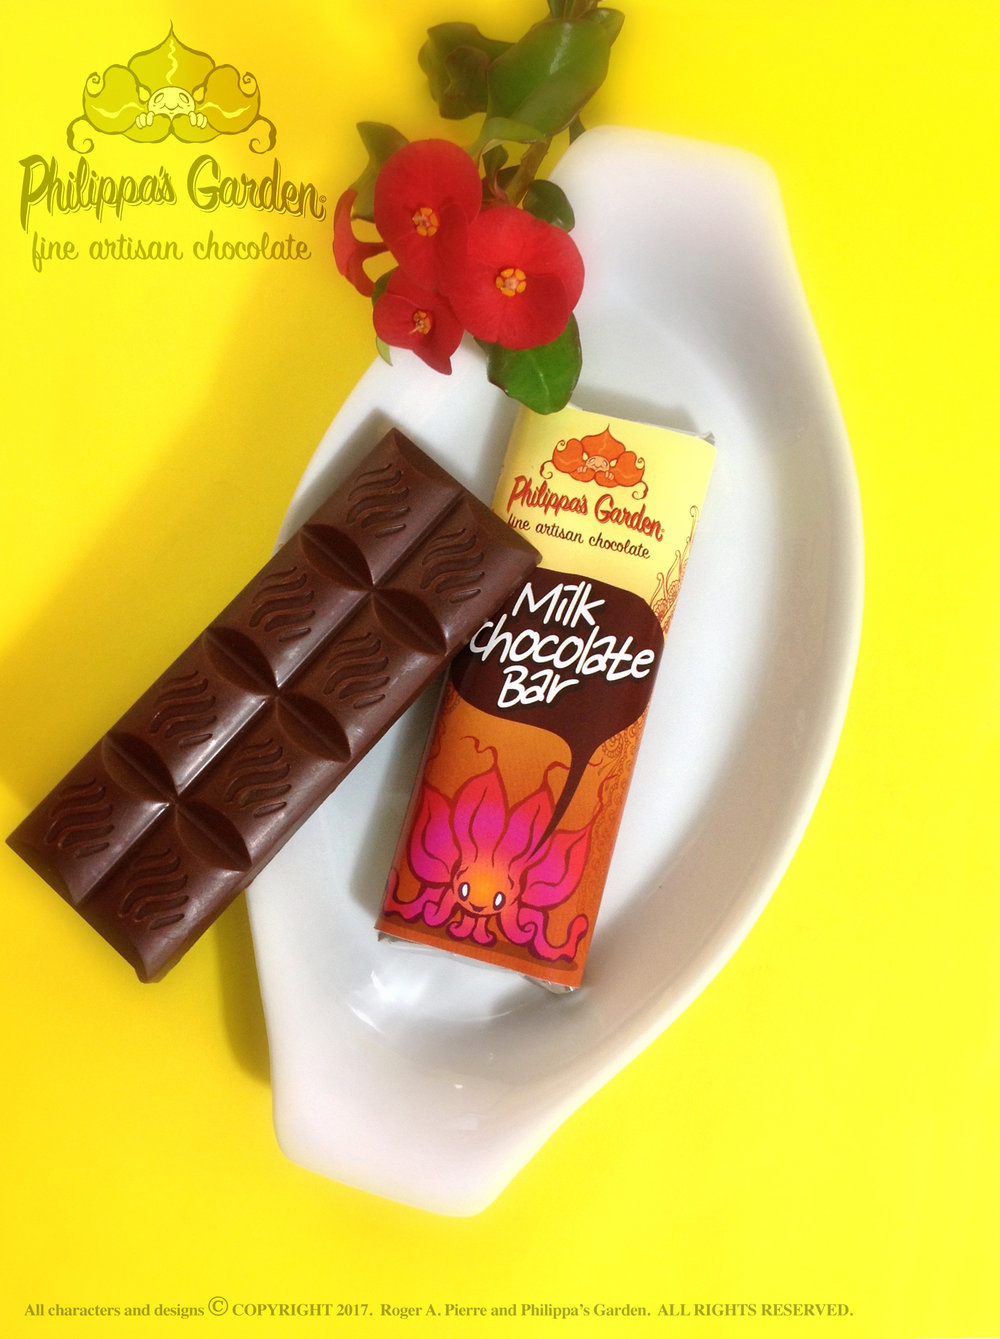 MILK CHOCOLATE BAR  - (30g)  Available in 25% and 15% varieties